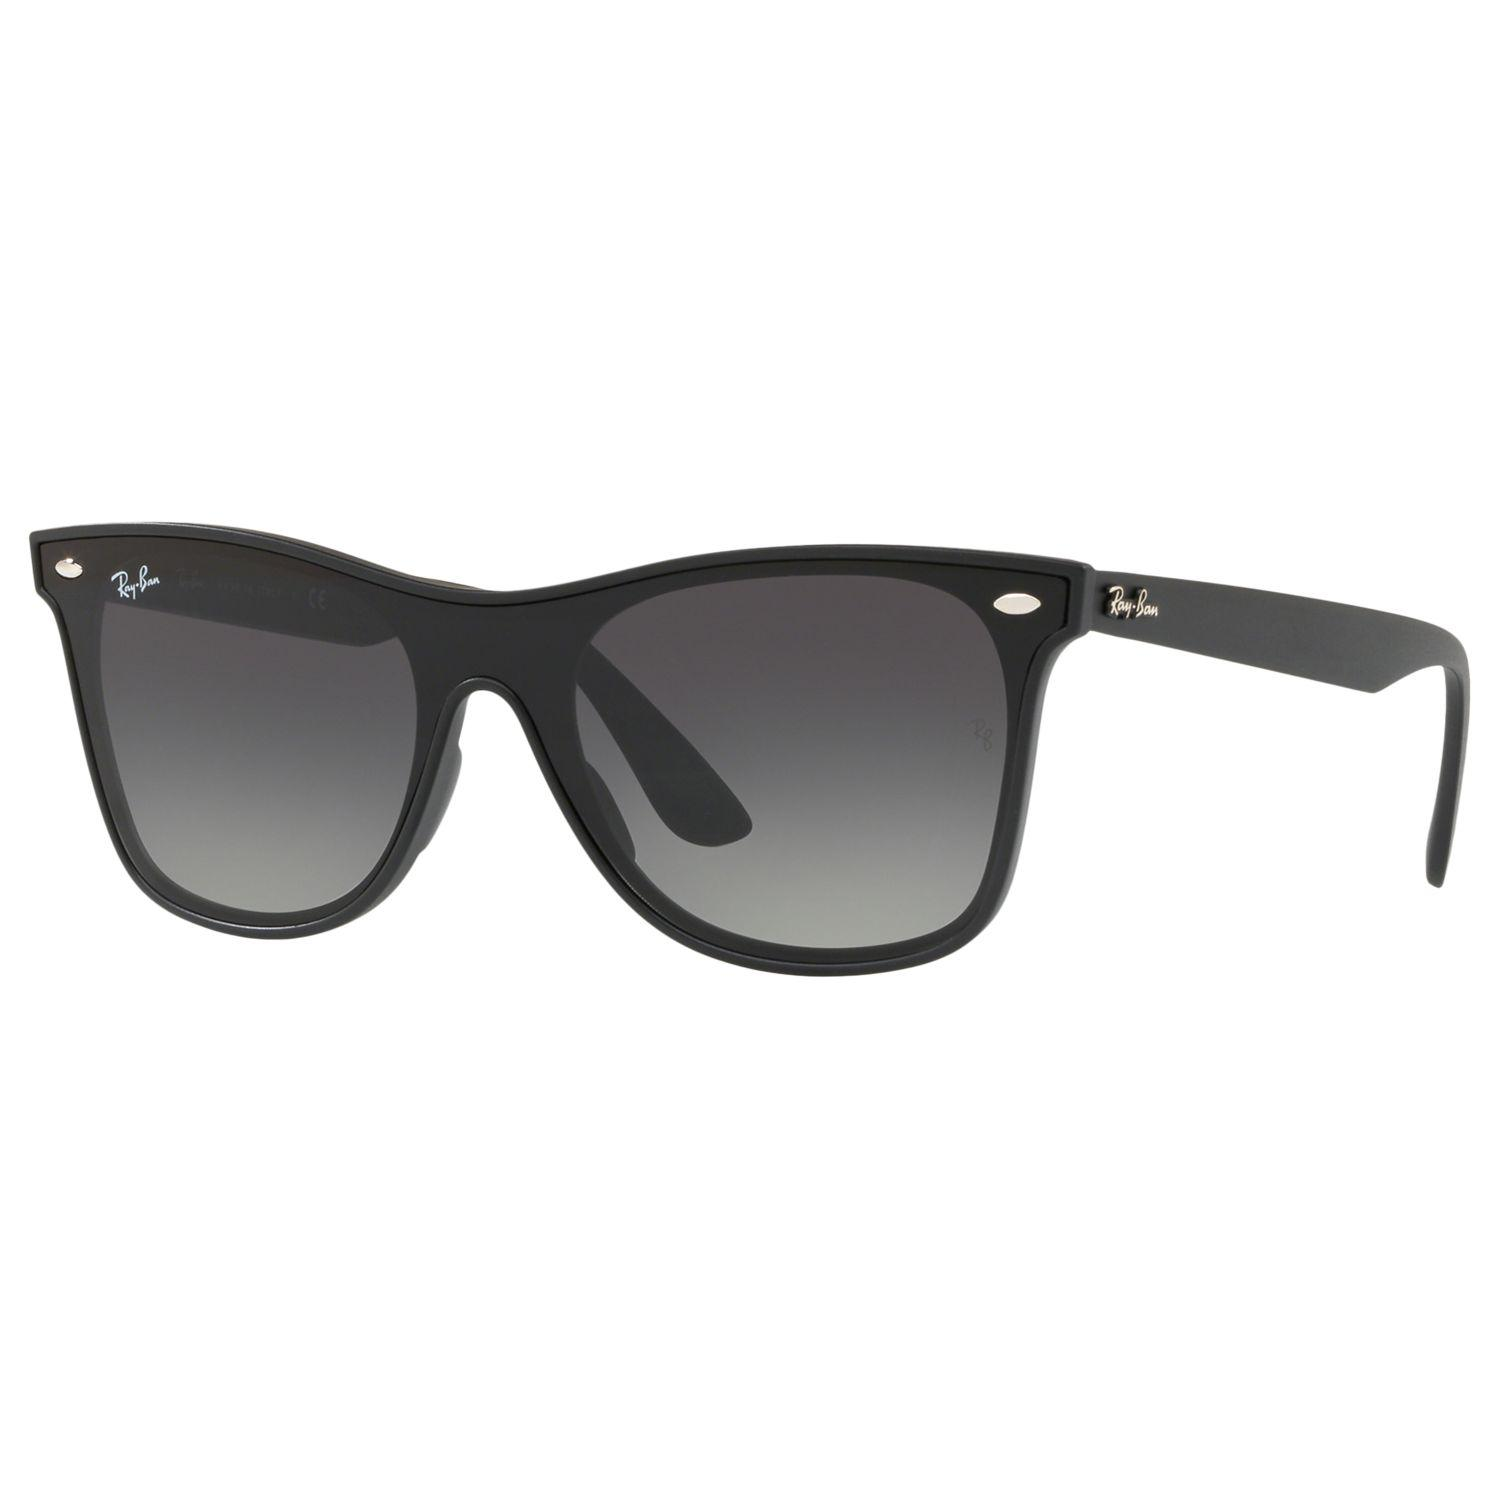 5e2dfbdb68 Ray-Ban Rb4440 Unisex Mirrored Sunglasses in Black - Lyst